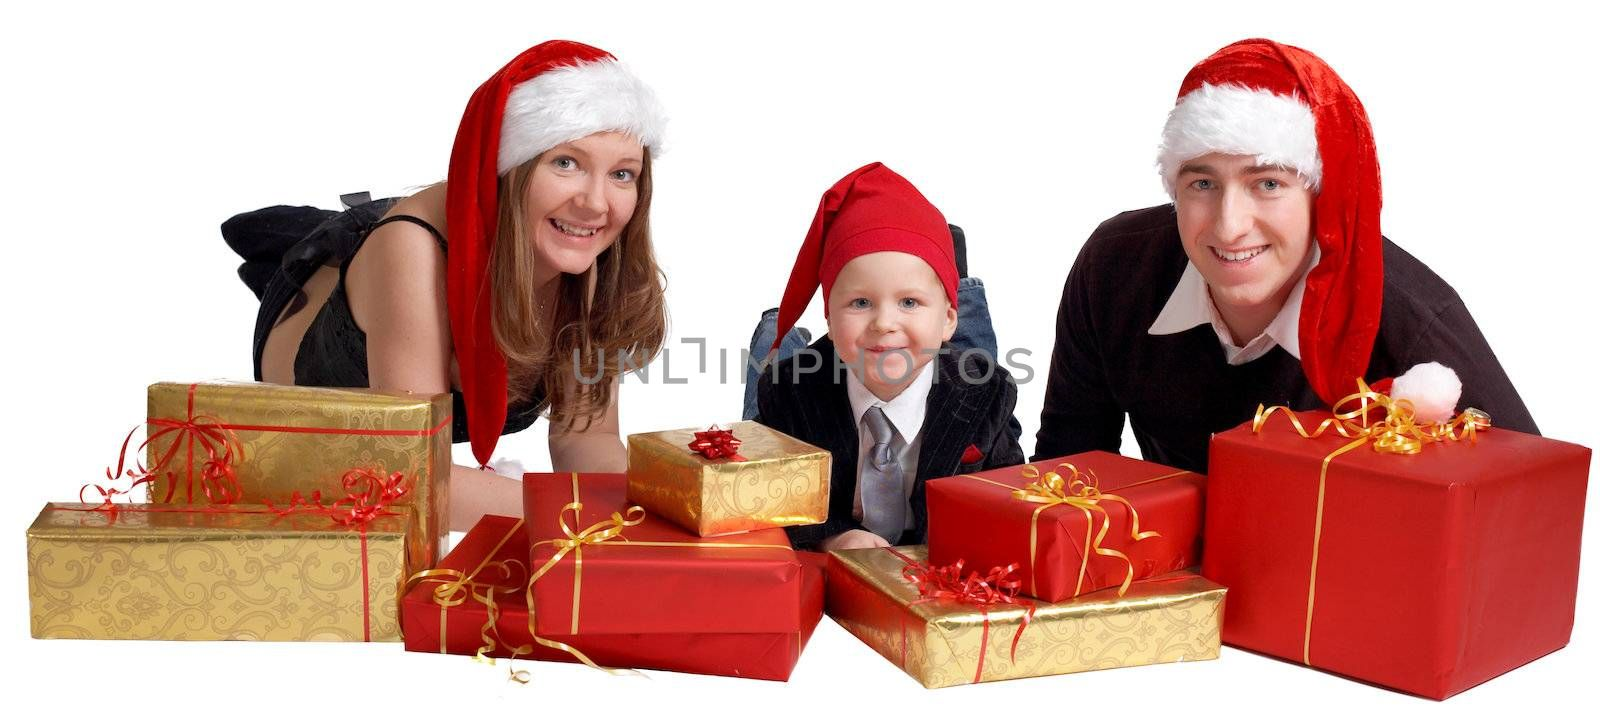 Isolated studio shot of happy young family of three wearing Santas hats with a lot of Christmas presents.